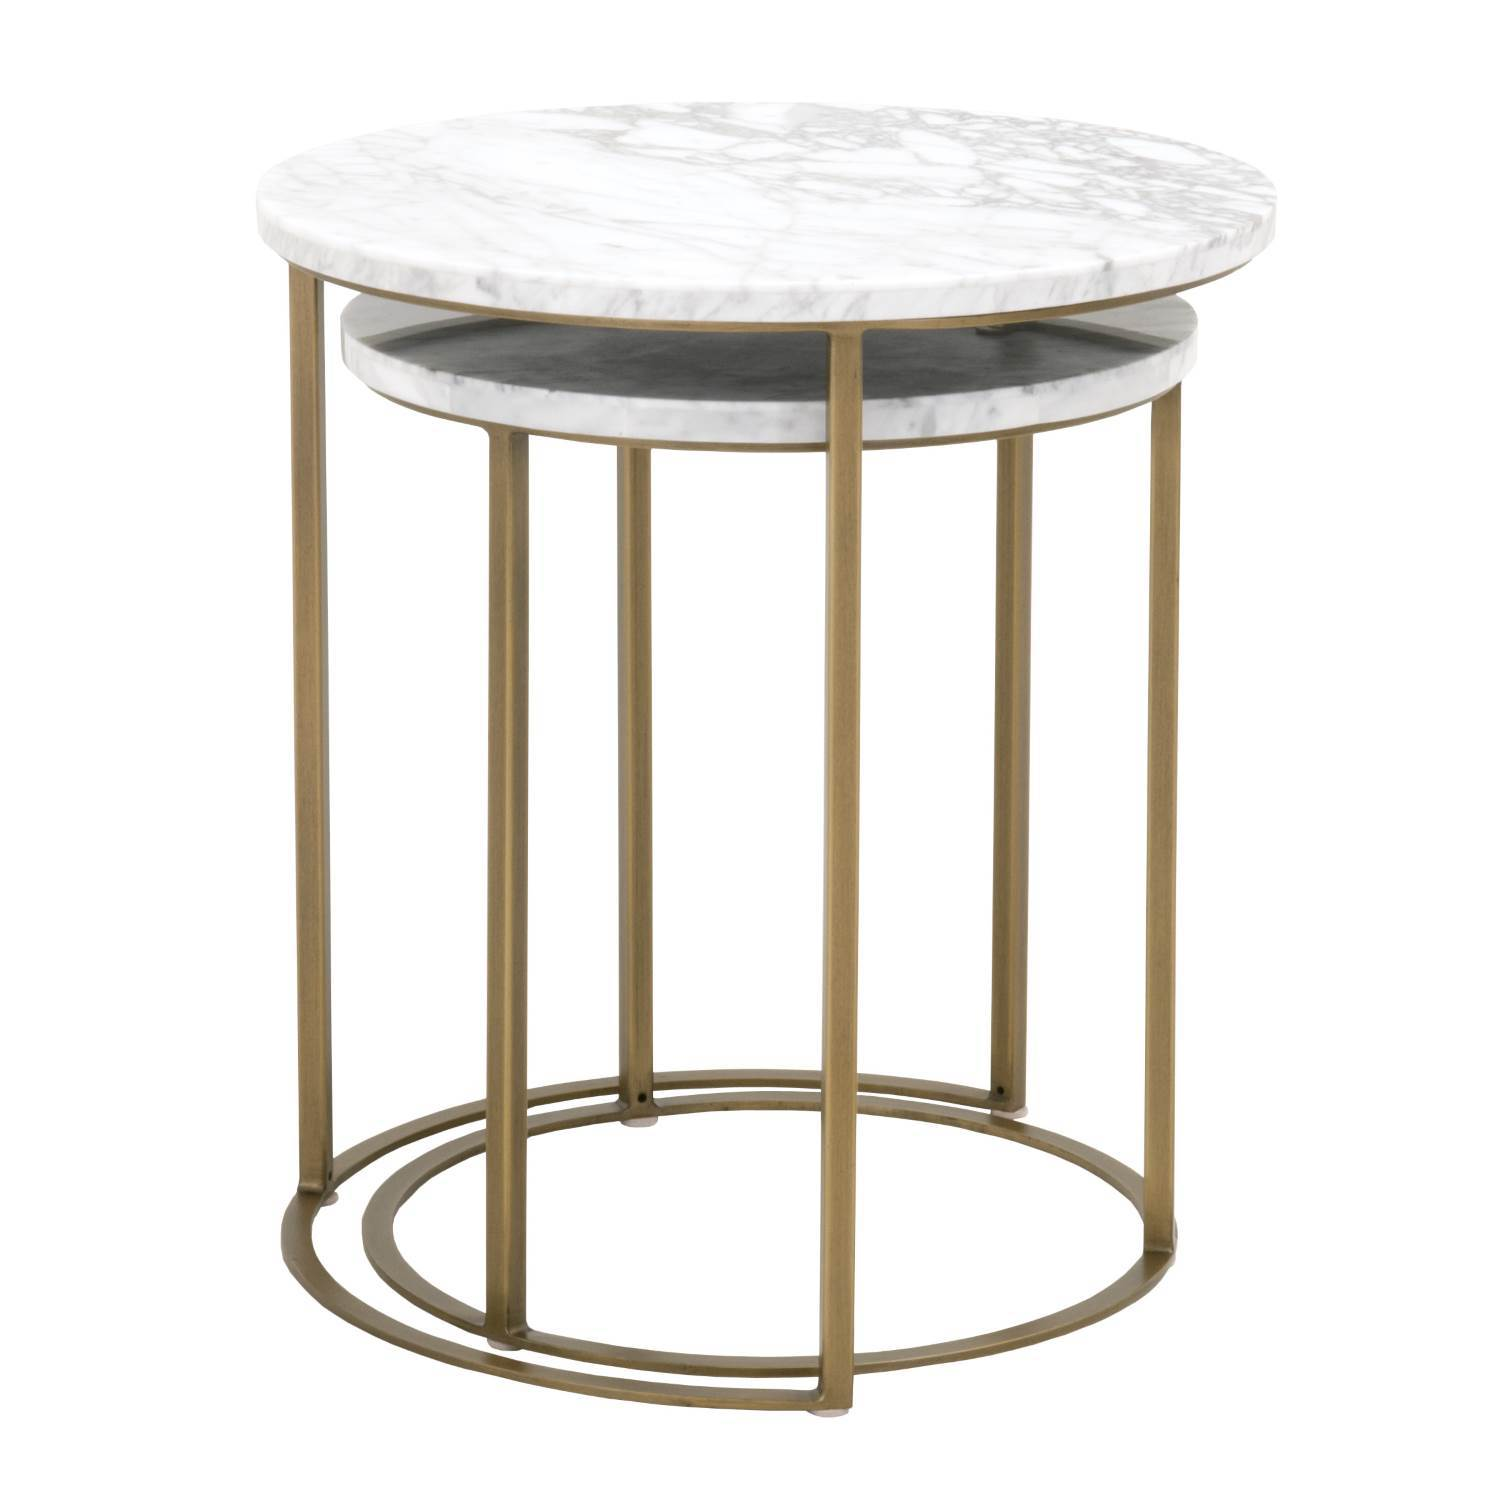 carrera round nesting accent table turner and jacksonville interior design furnishings brushed gold entry furniture metal bookshelf verizon lte tablet grey nightstand lounge room